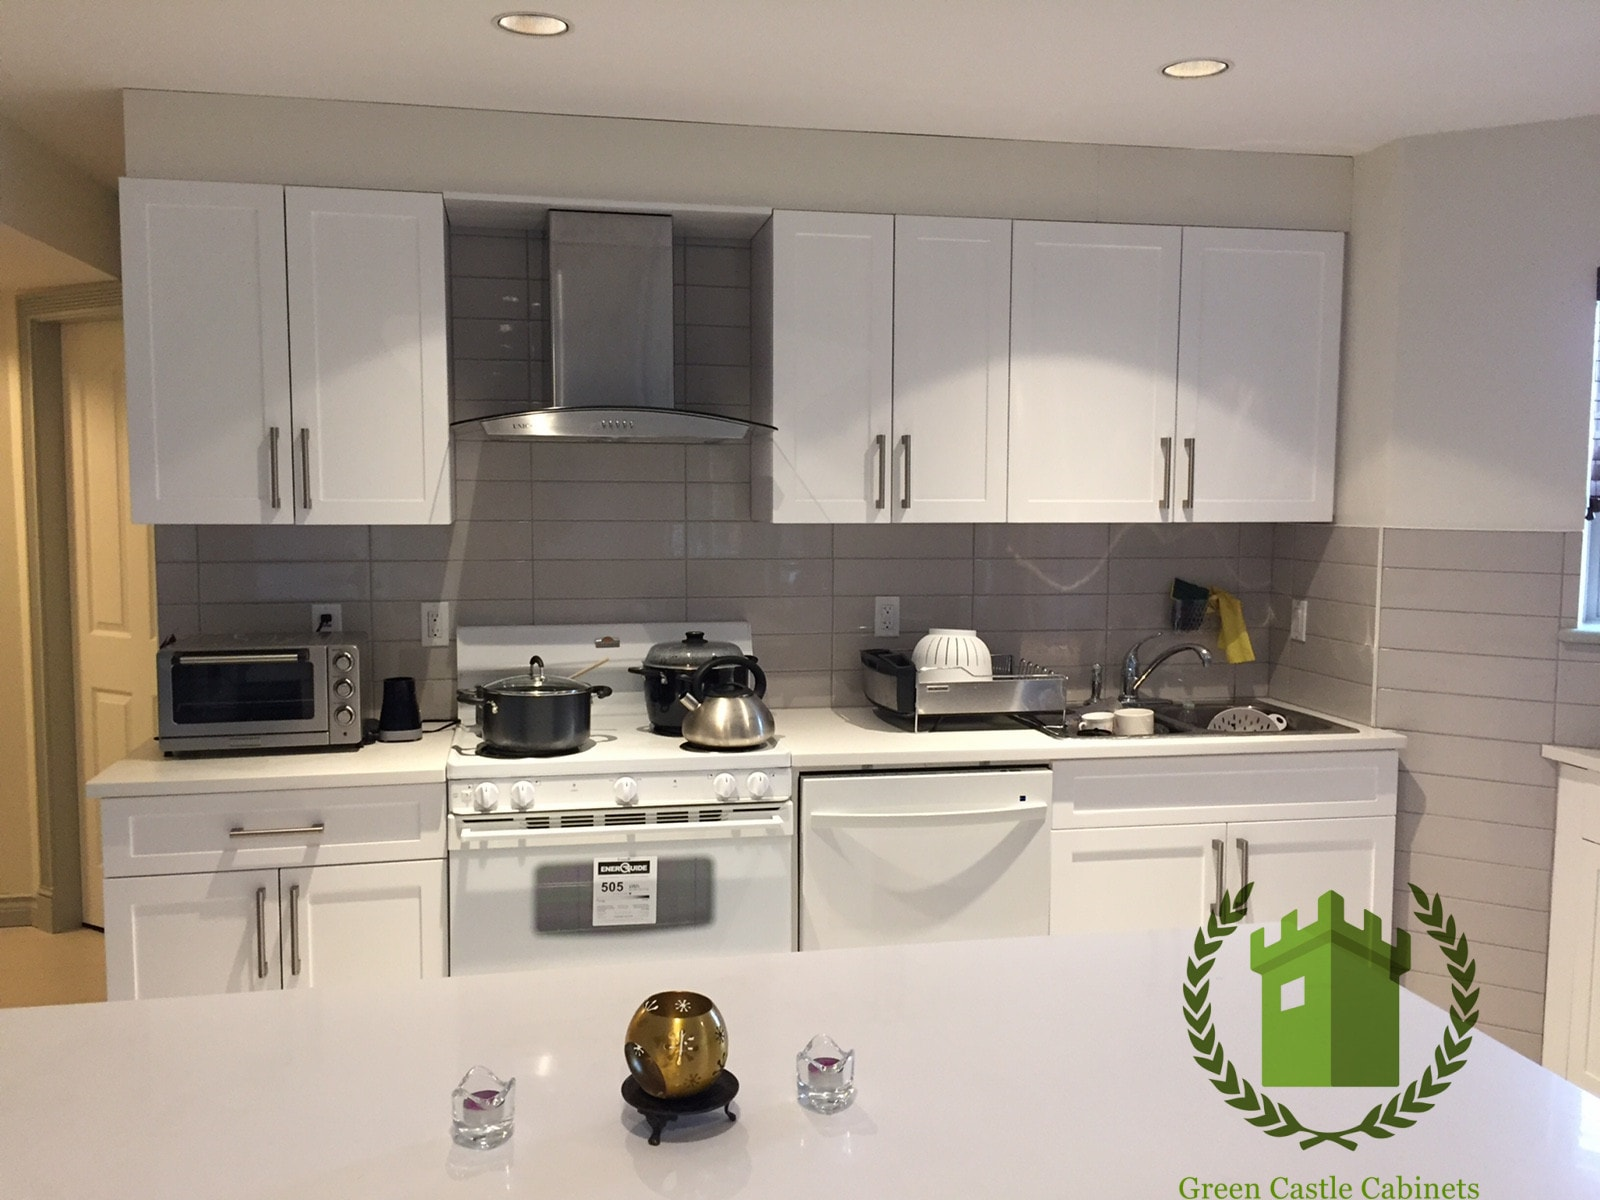 green castle cabinets |